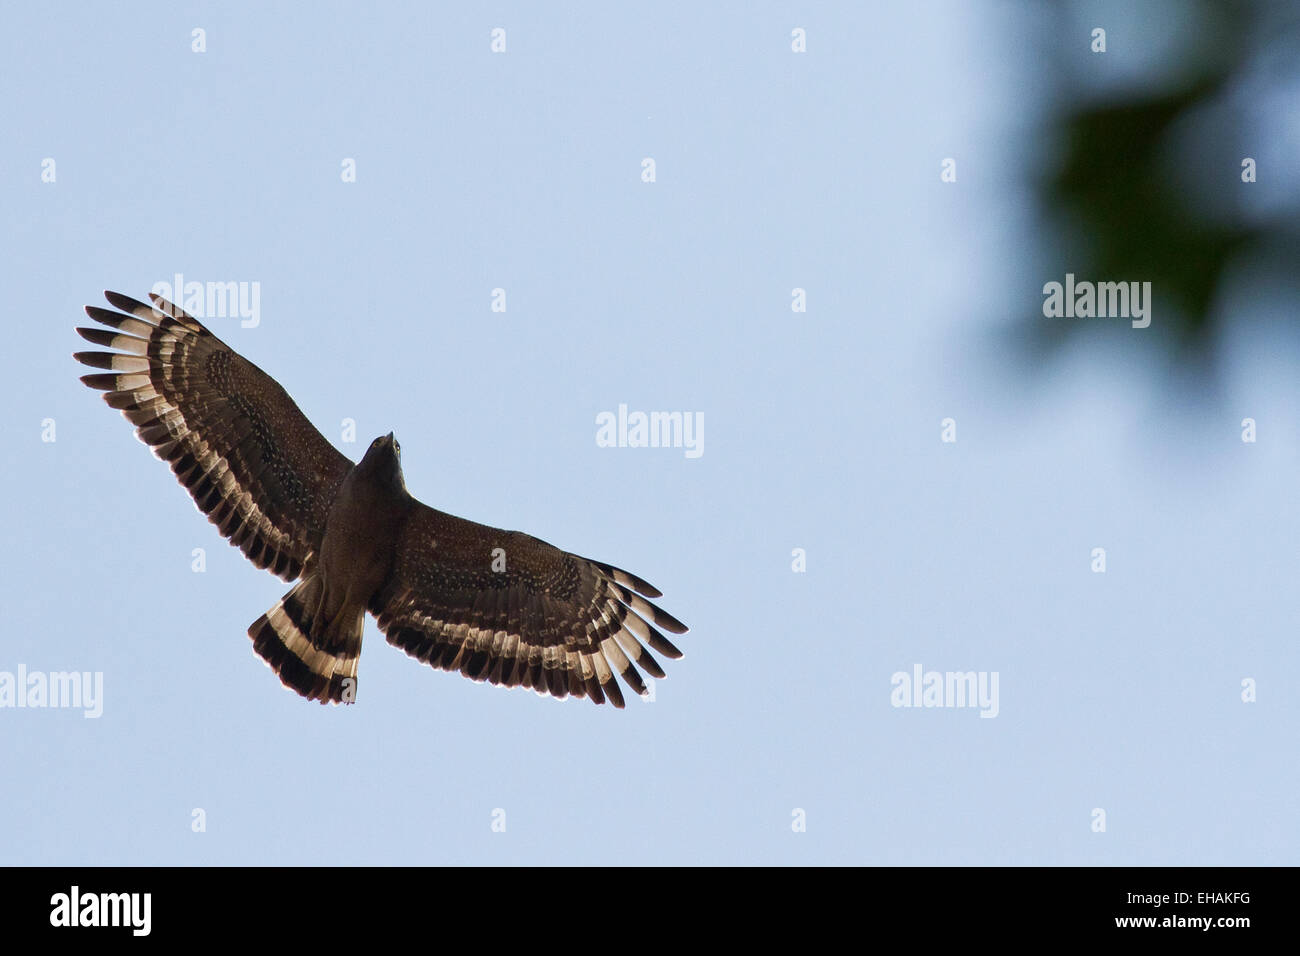 Crested Serpent Eagle (Spilornis cheela) in flight from below - Stock Image